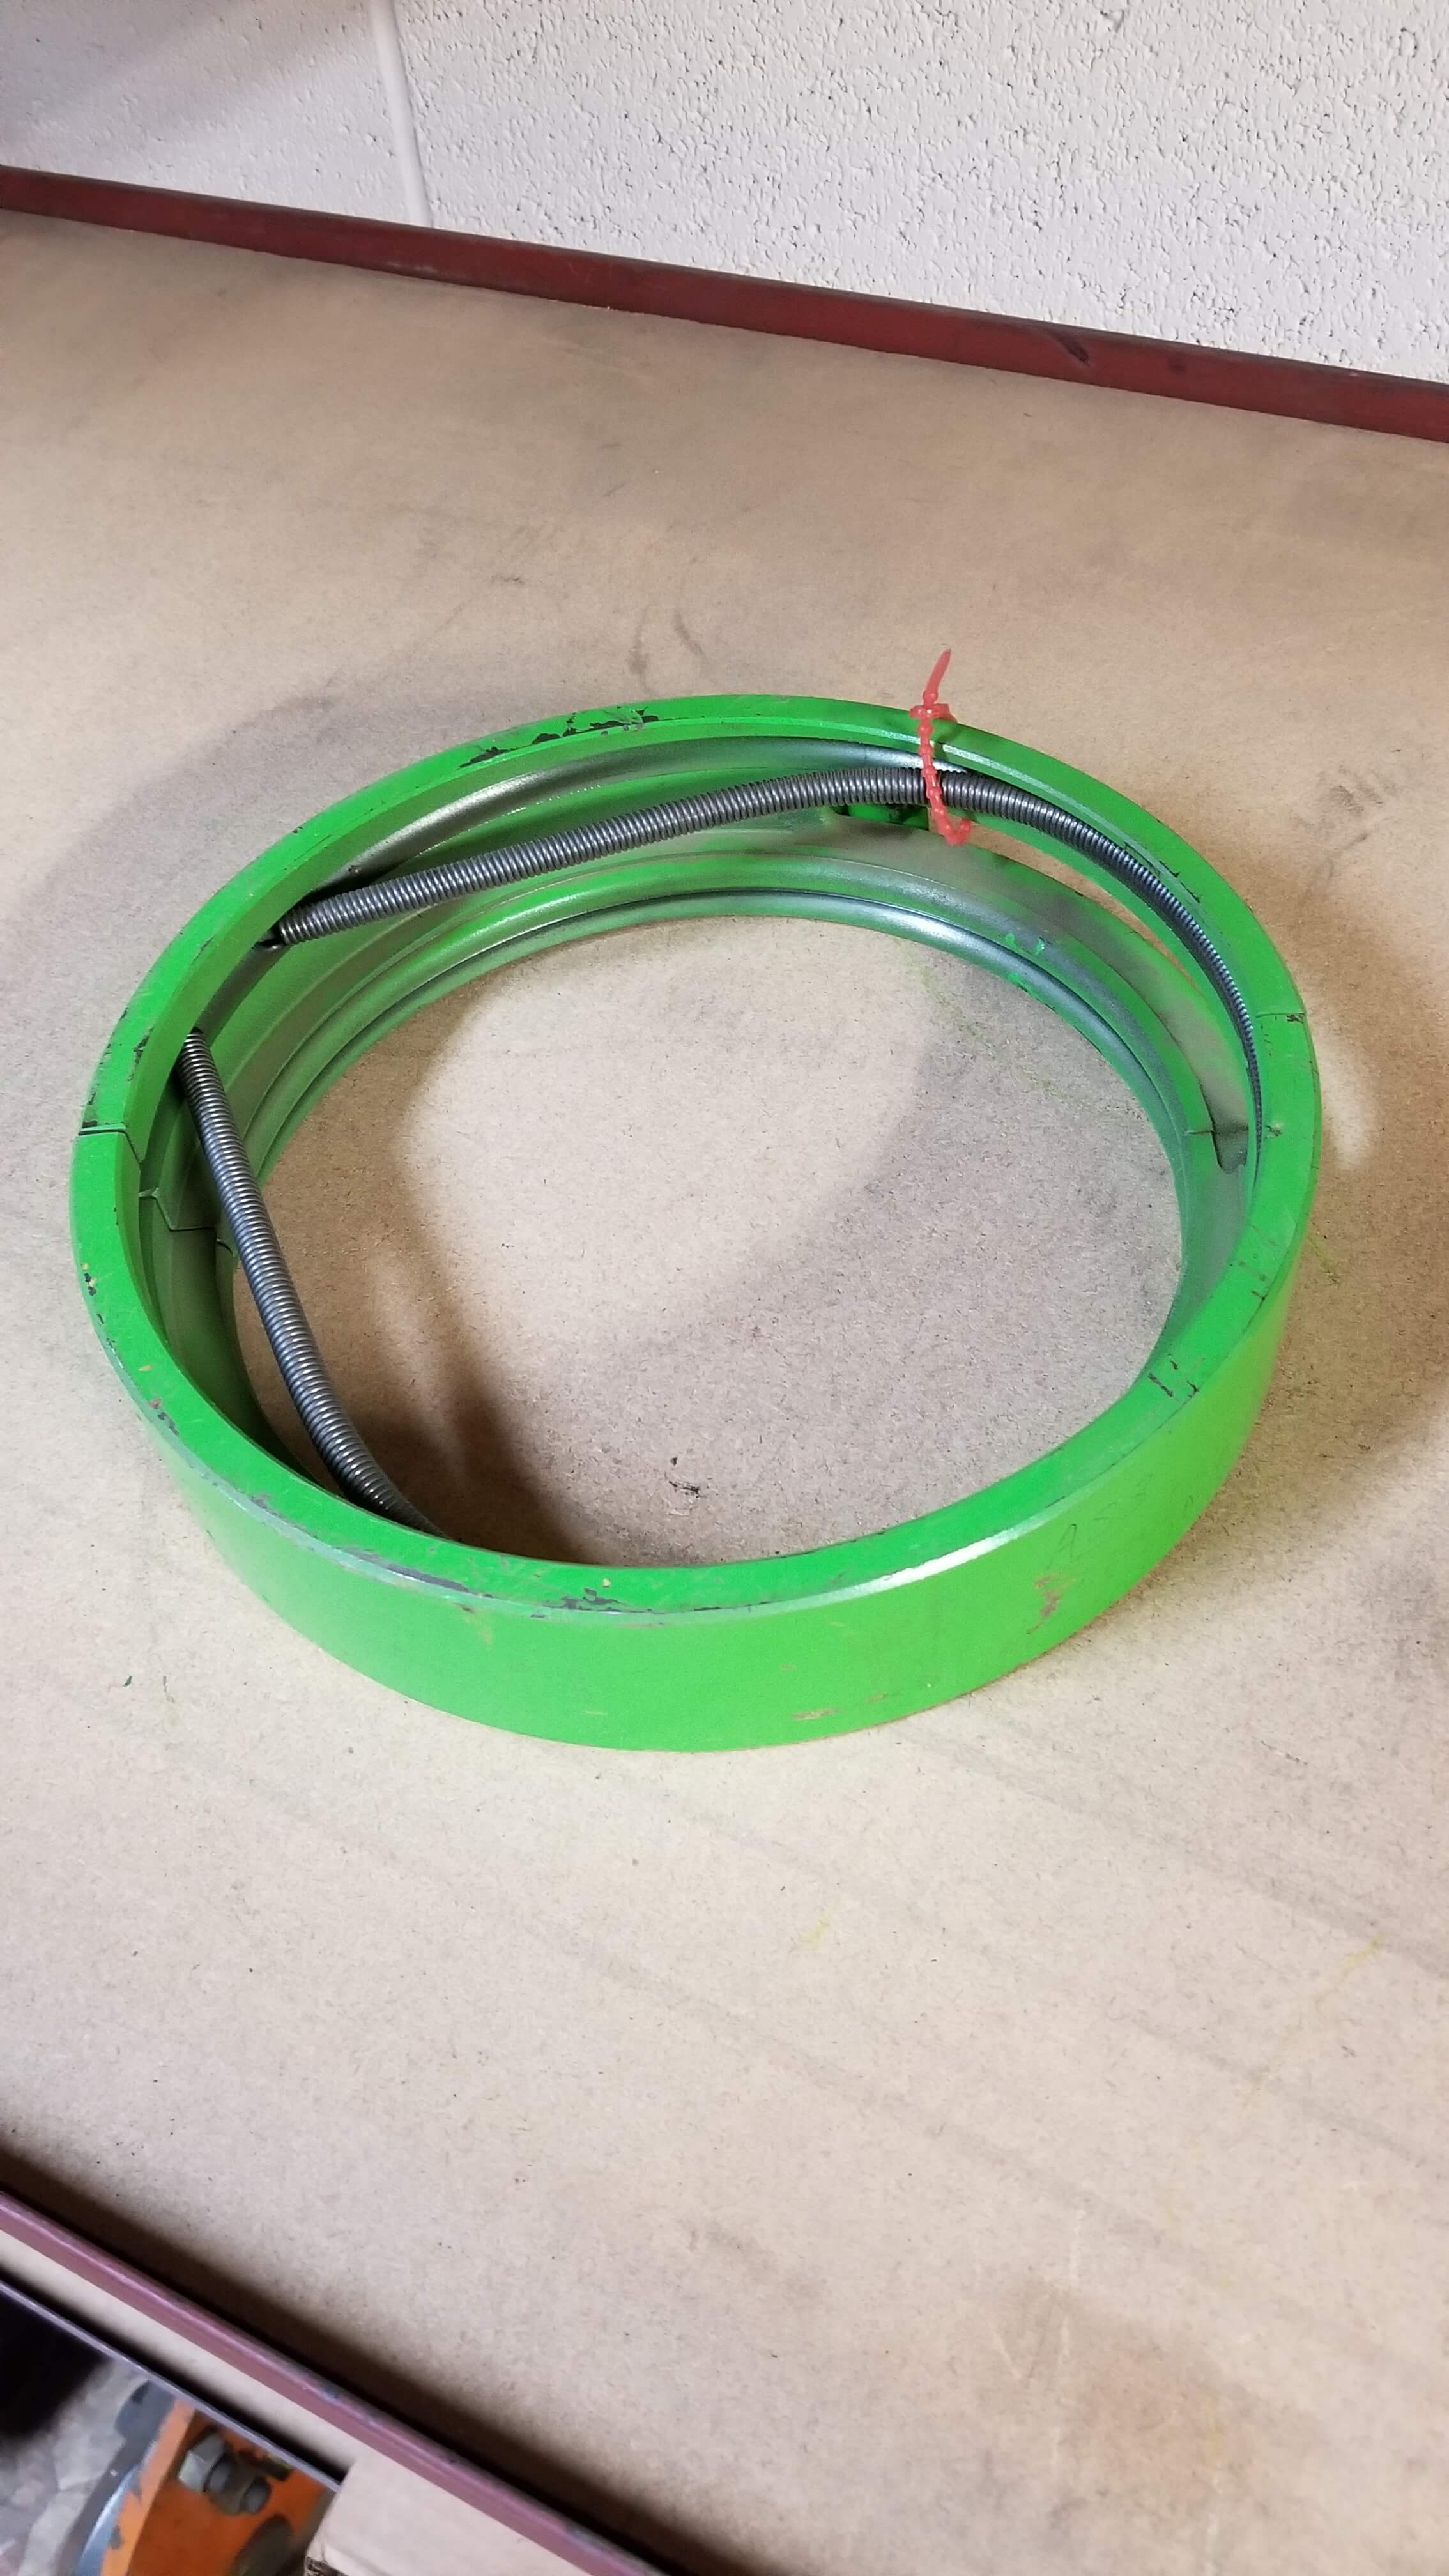 Stahl A3 Ropeguide  P/N: 43 330 03 430  $2700.00